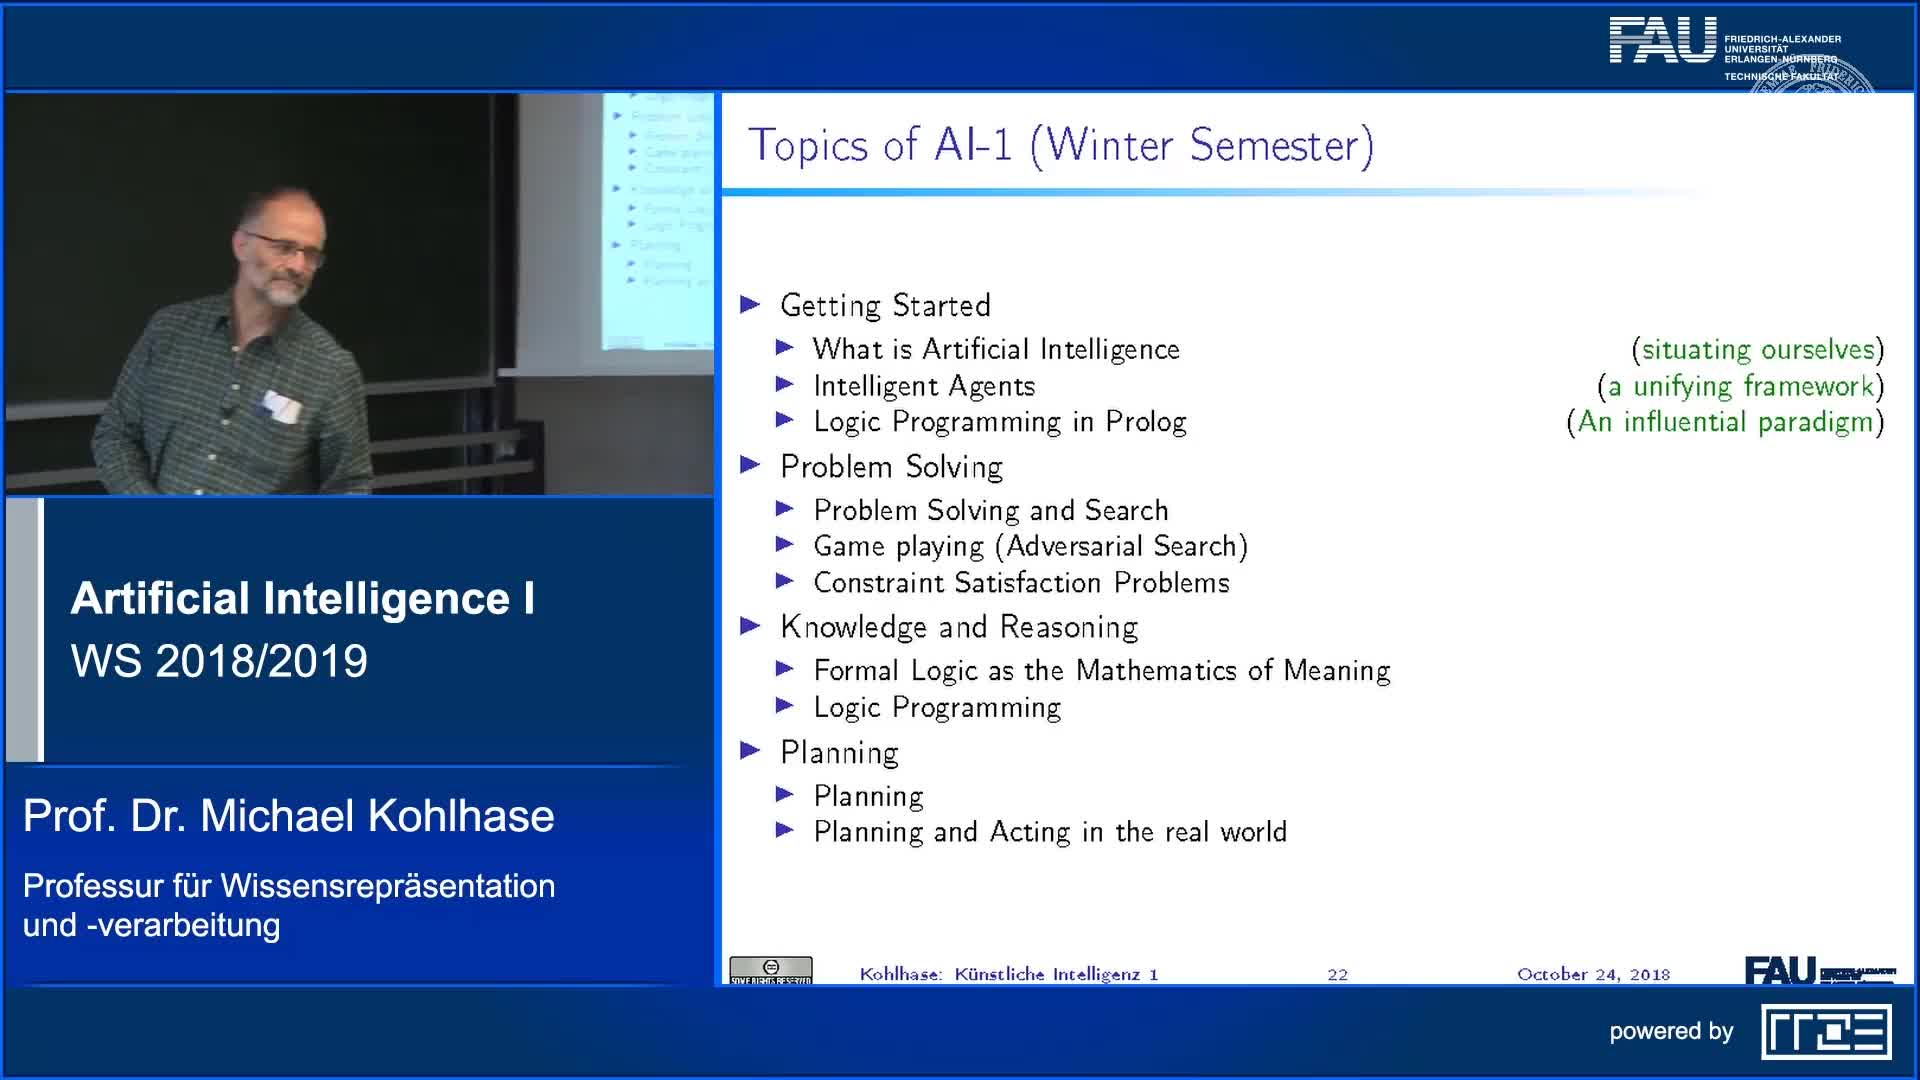 AI Topics Covered preview image